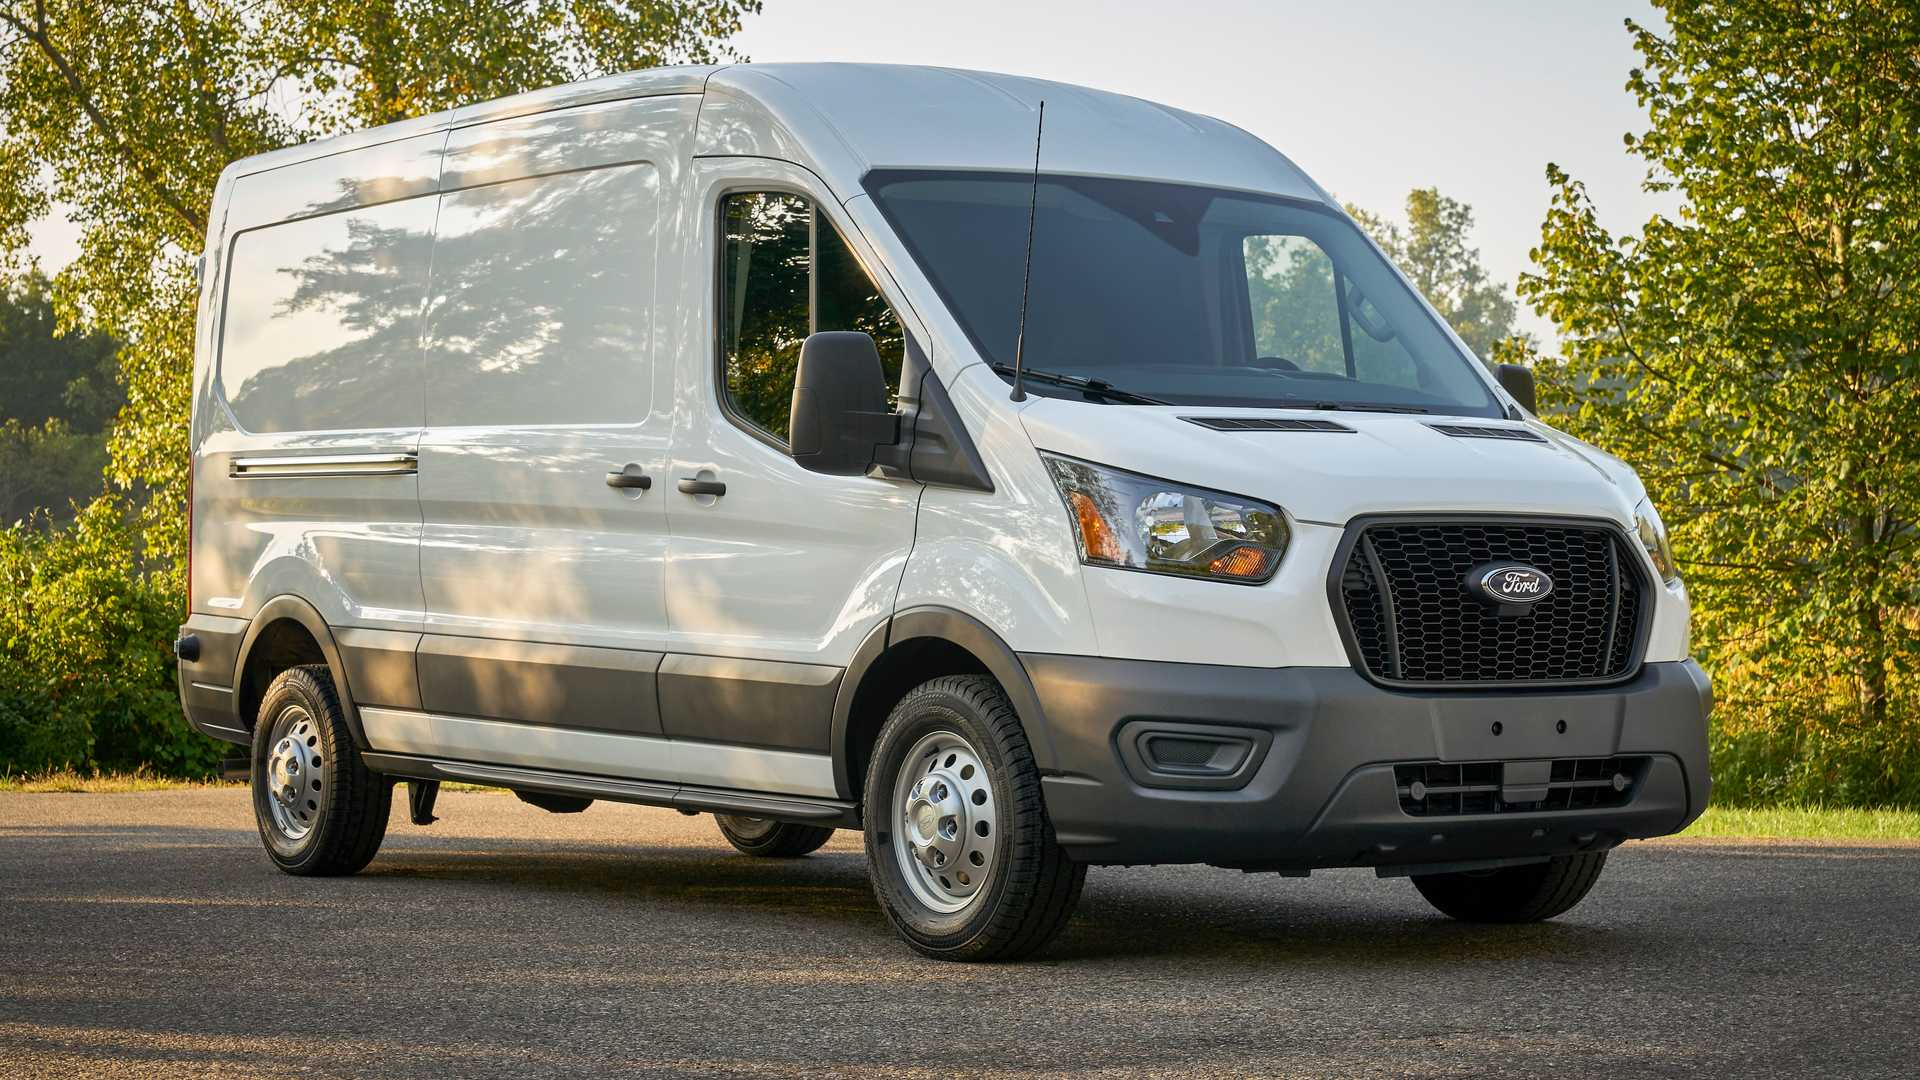 2021 Ford Transit Gets Adventure, RV Prep Packages For Outdoorsy People